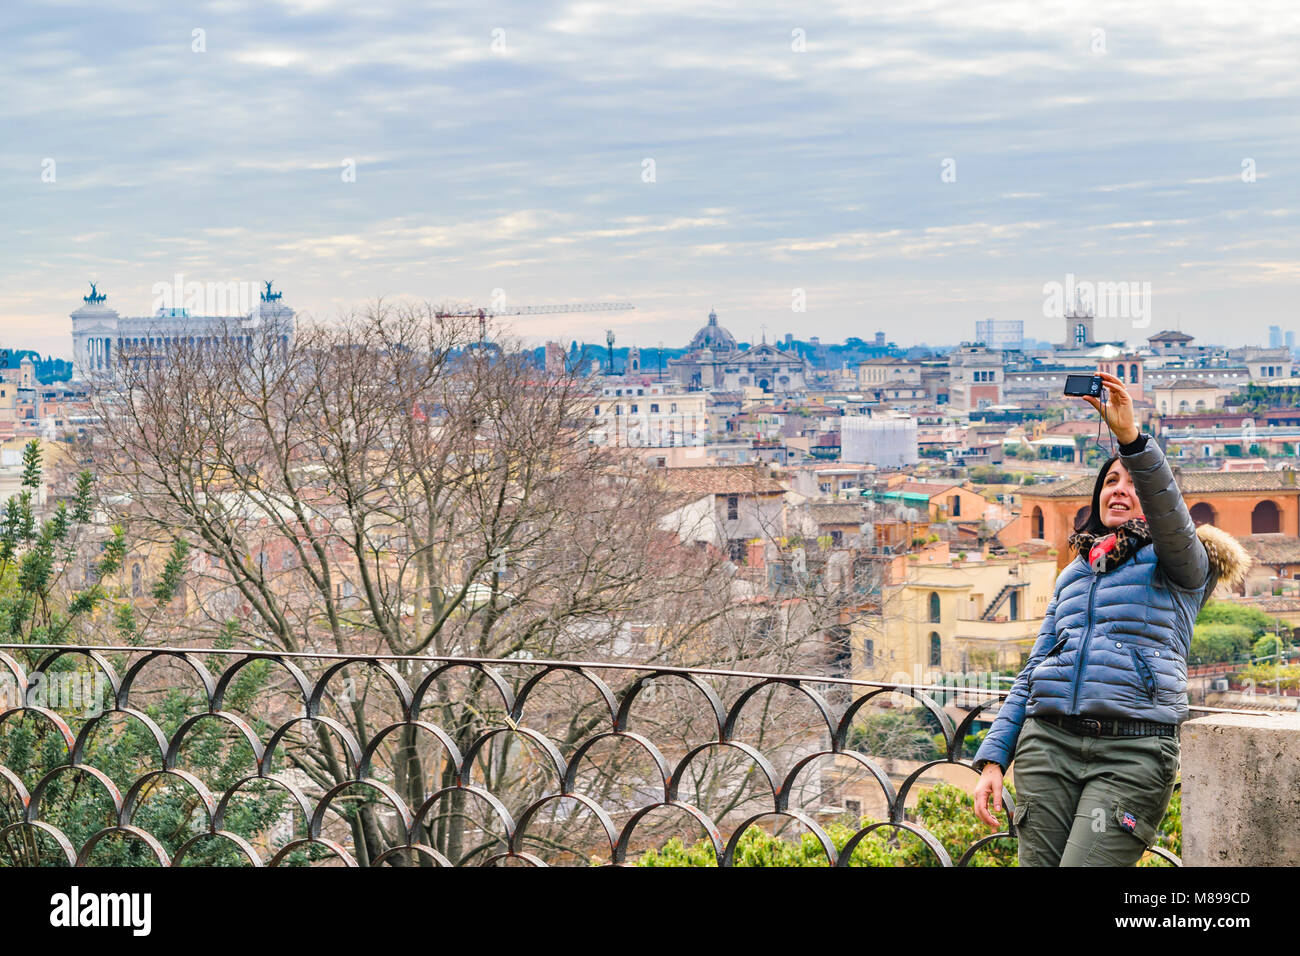 ROME, ITALY, DECEMBER - 2017 - Woman taking a selfie at monte pincio viewpoint at Villa Borghese - Stock Image